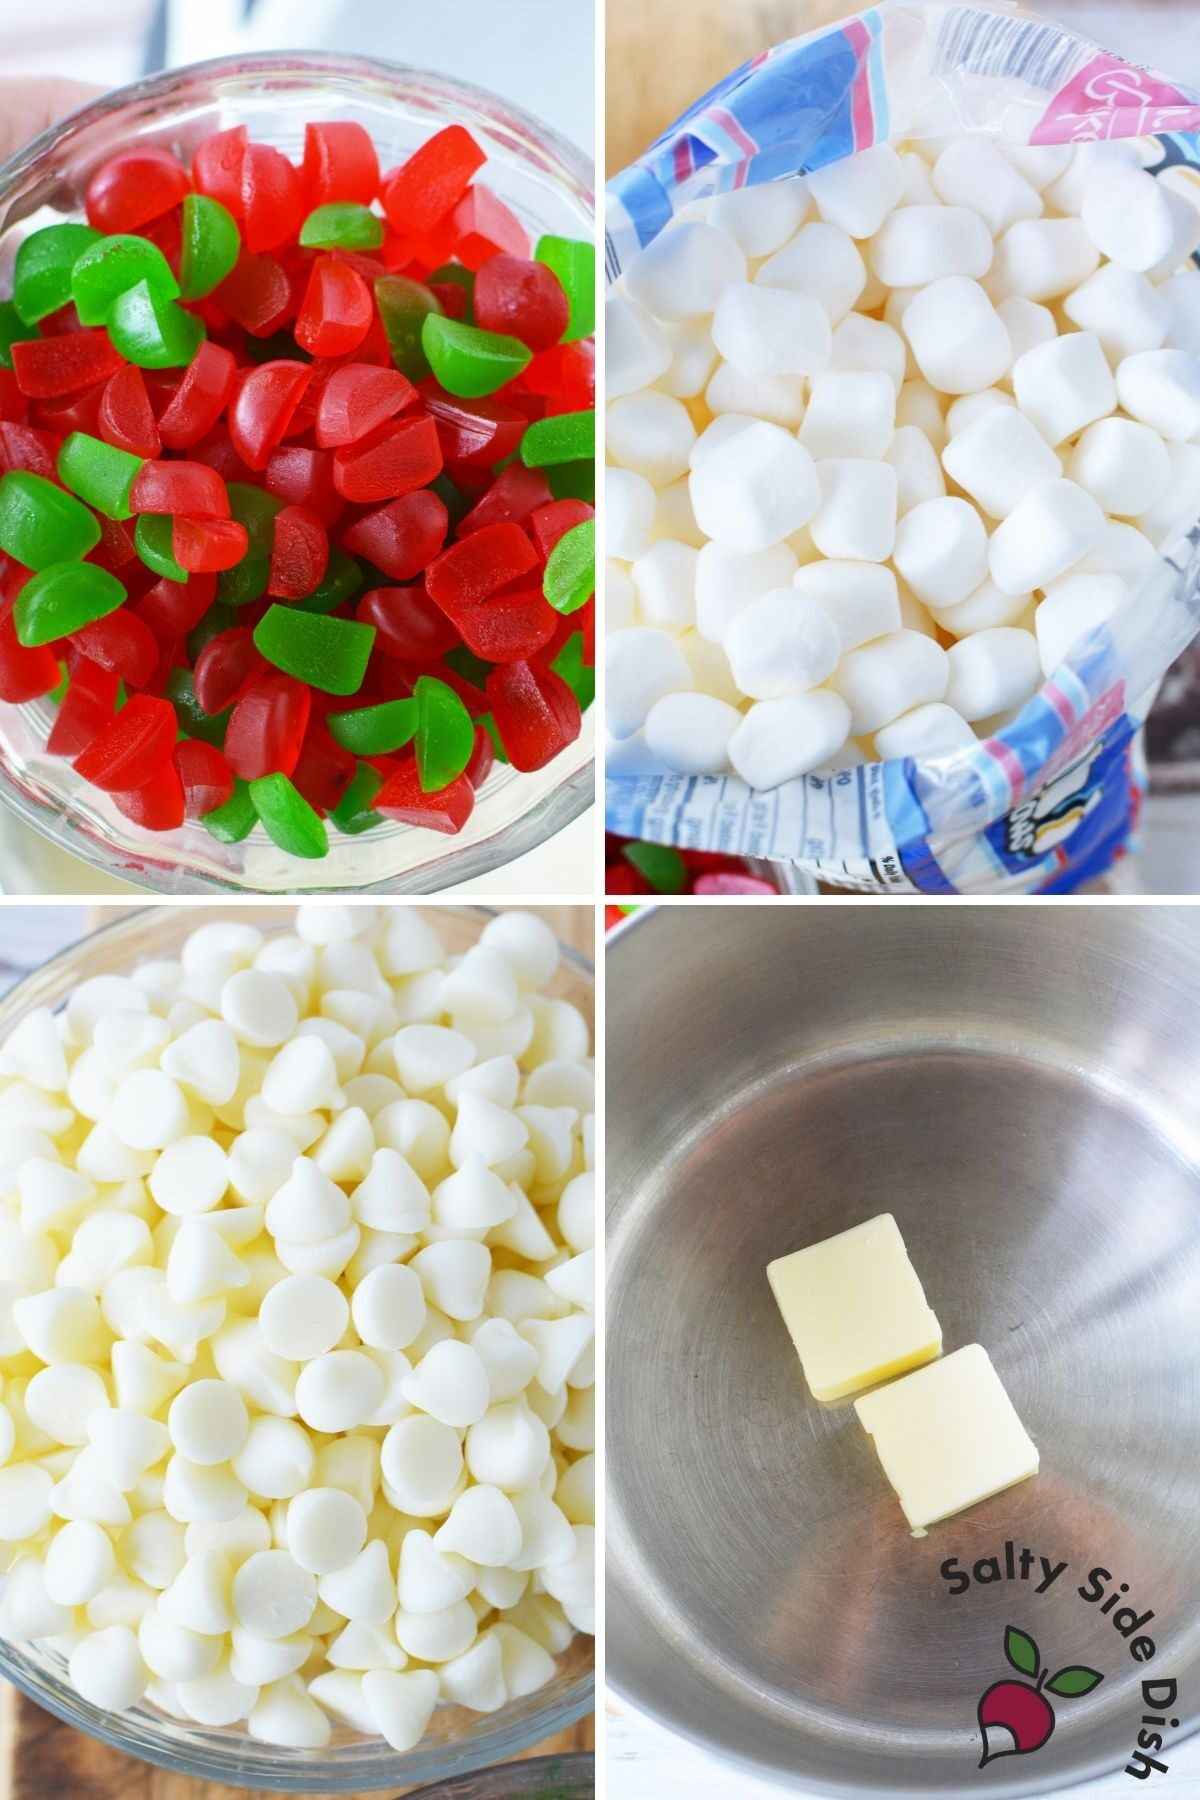 images of 4 Christmas nougat ingredients.